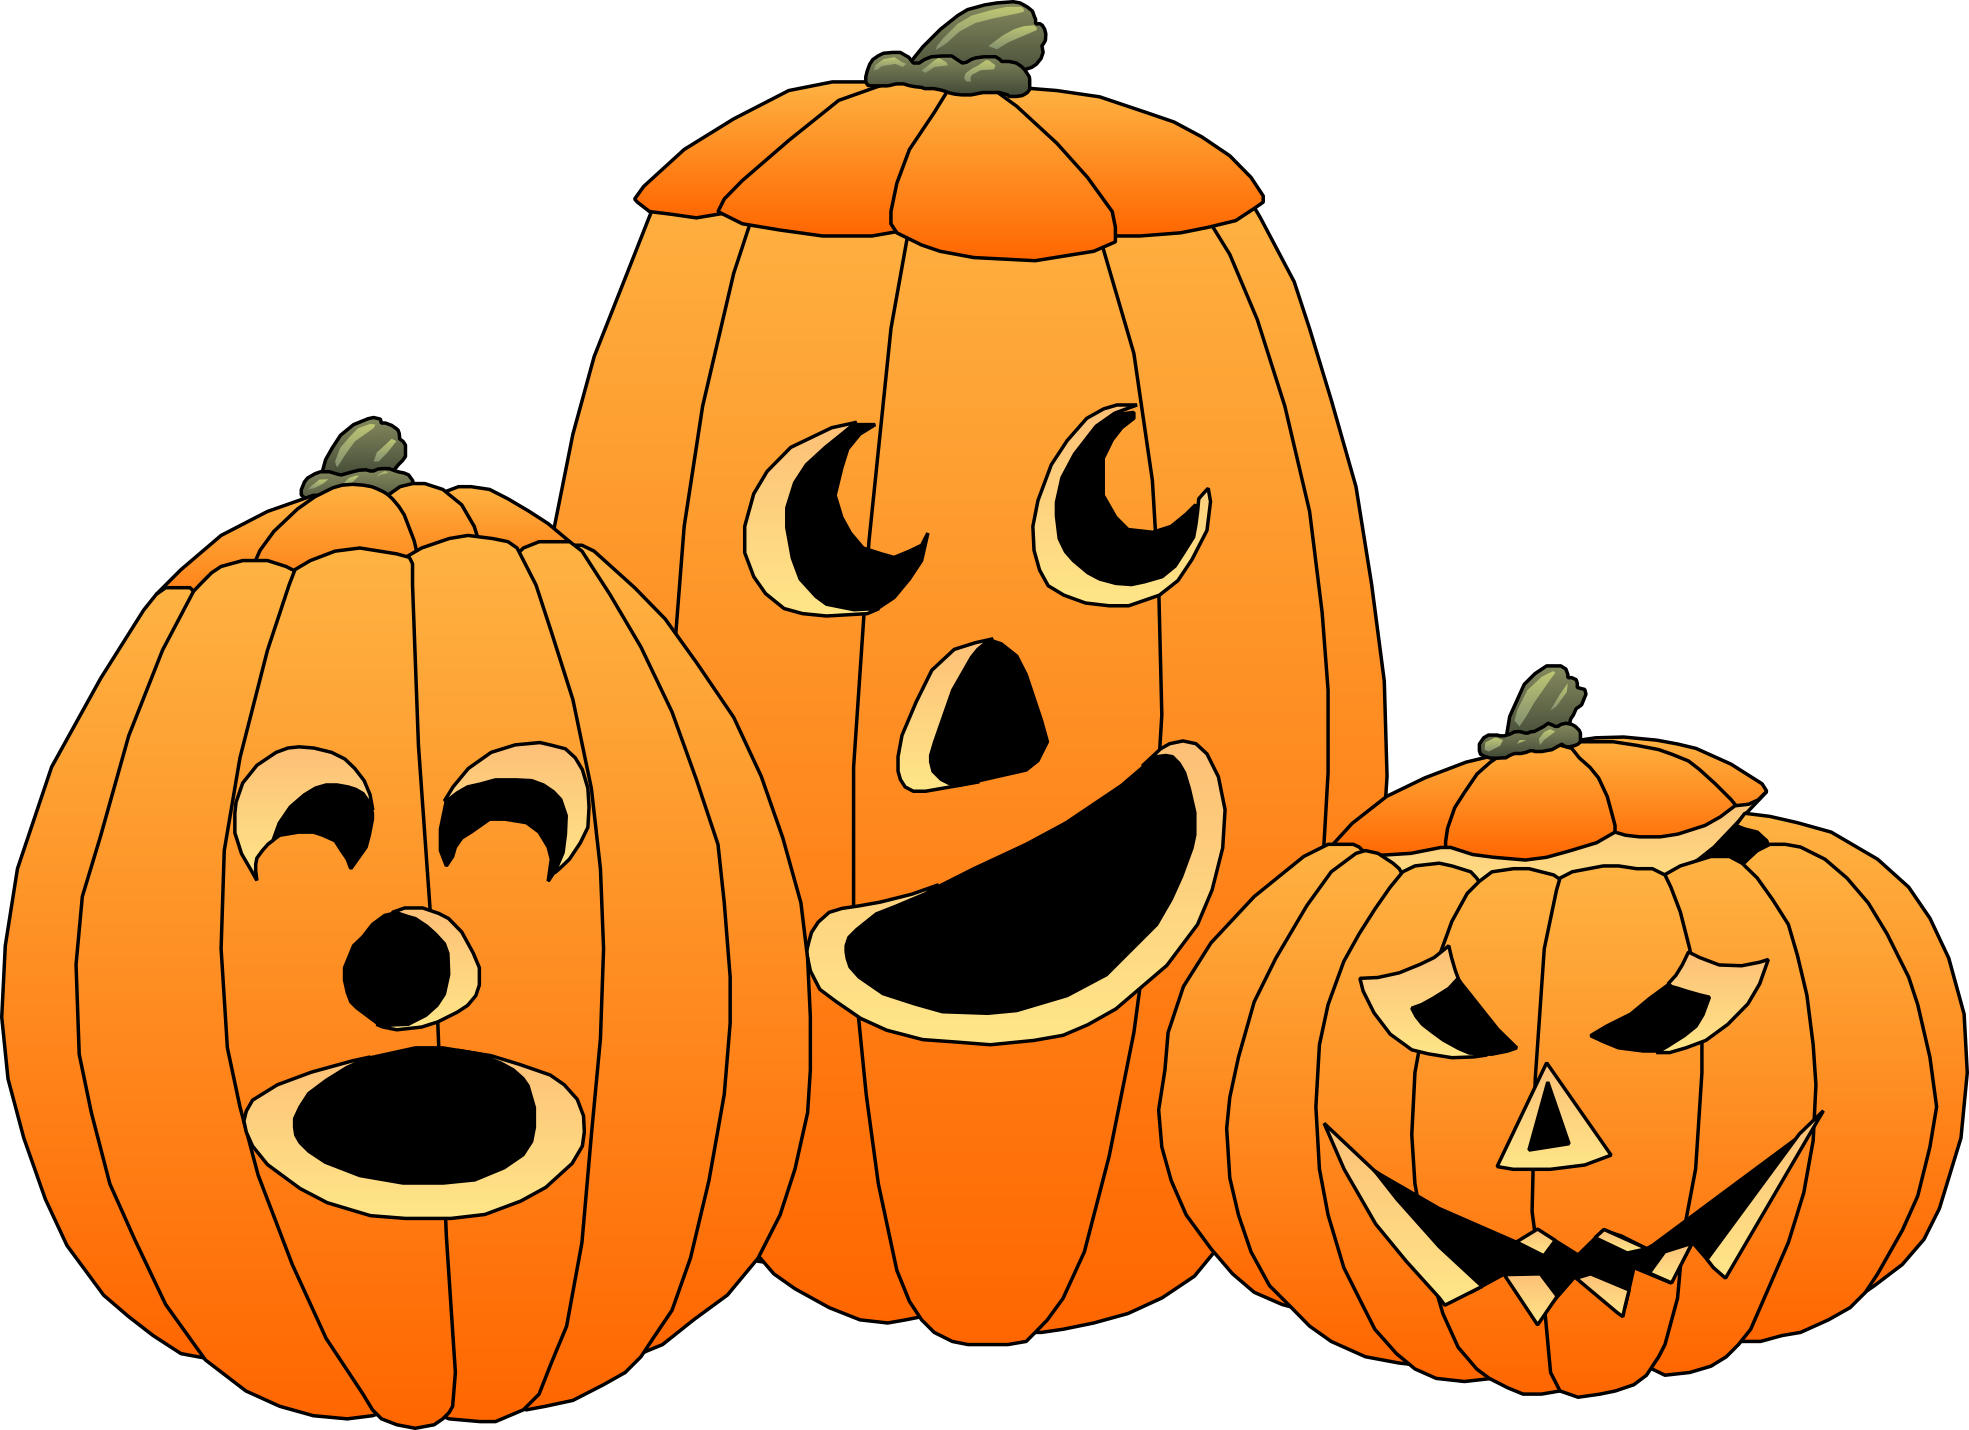 Pumpkin faces happy clipart clipart clipartist.net » Clip Art » Artfavor Art Munchie Priestley Halloween SVG clipart